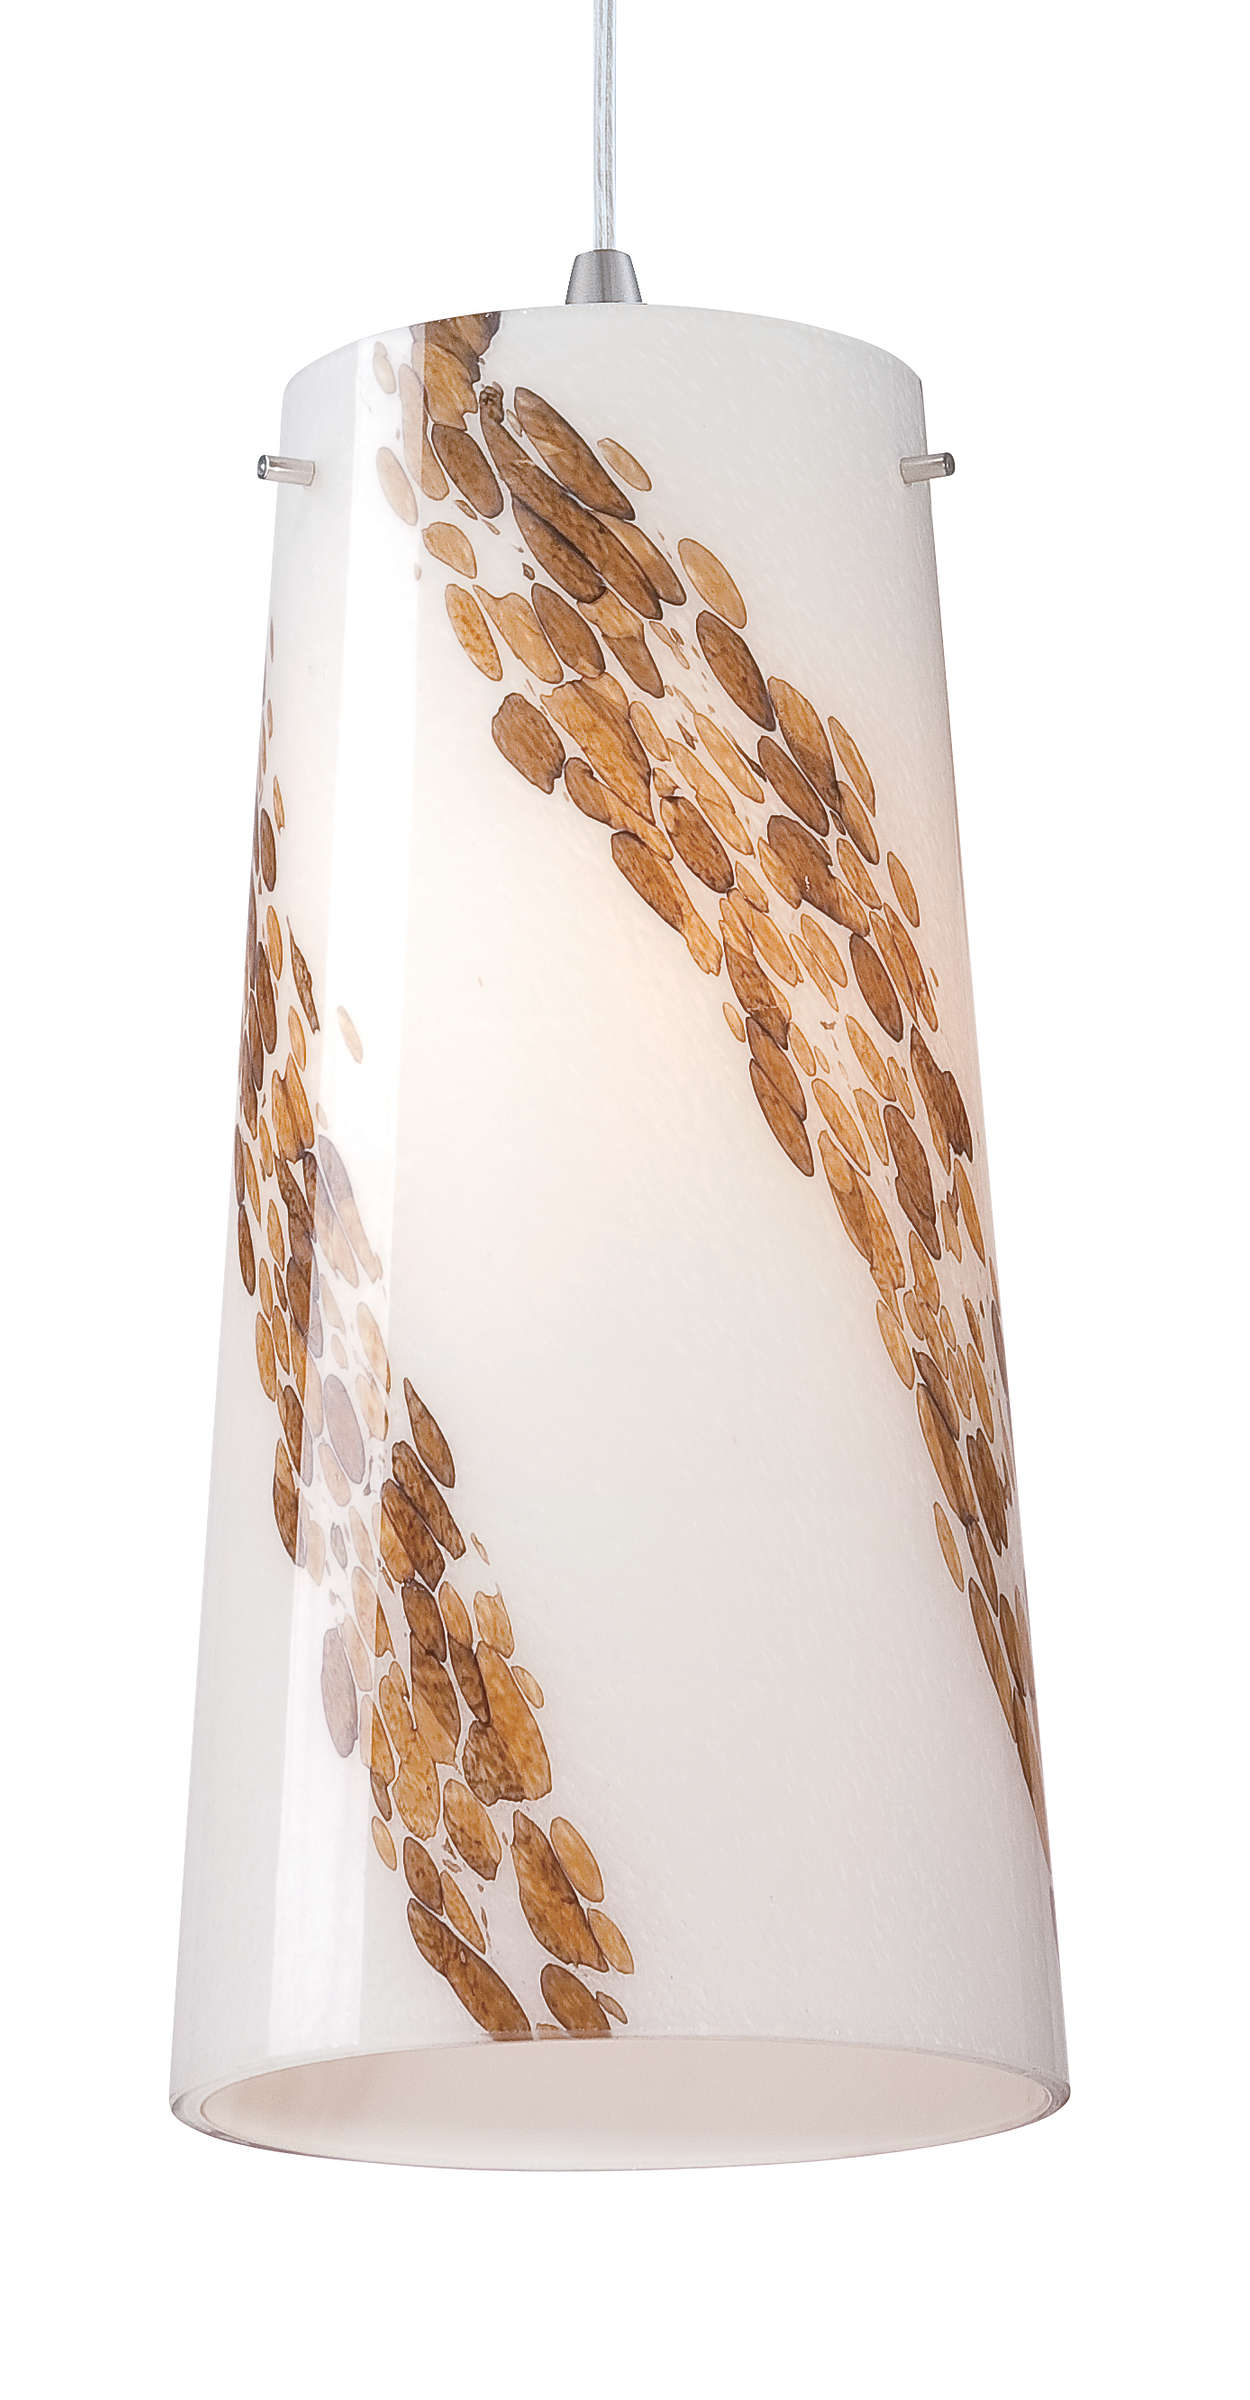 Piave glass shade